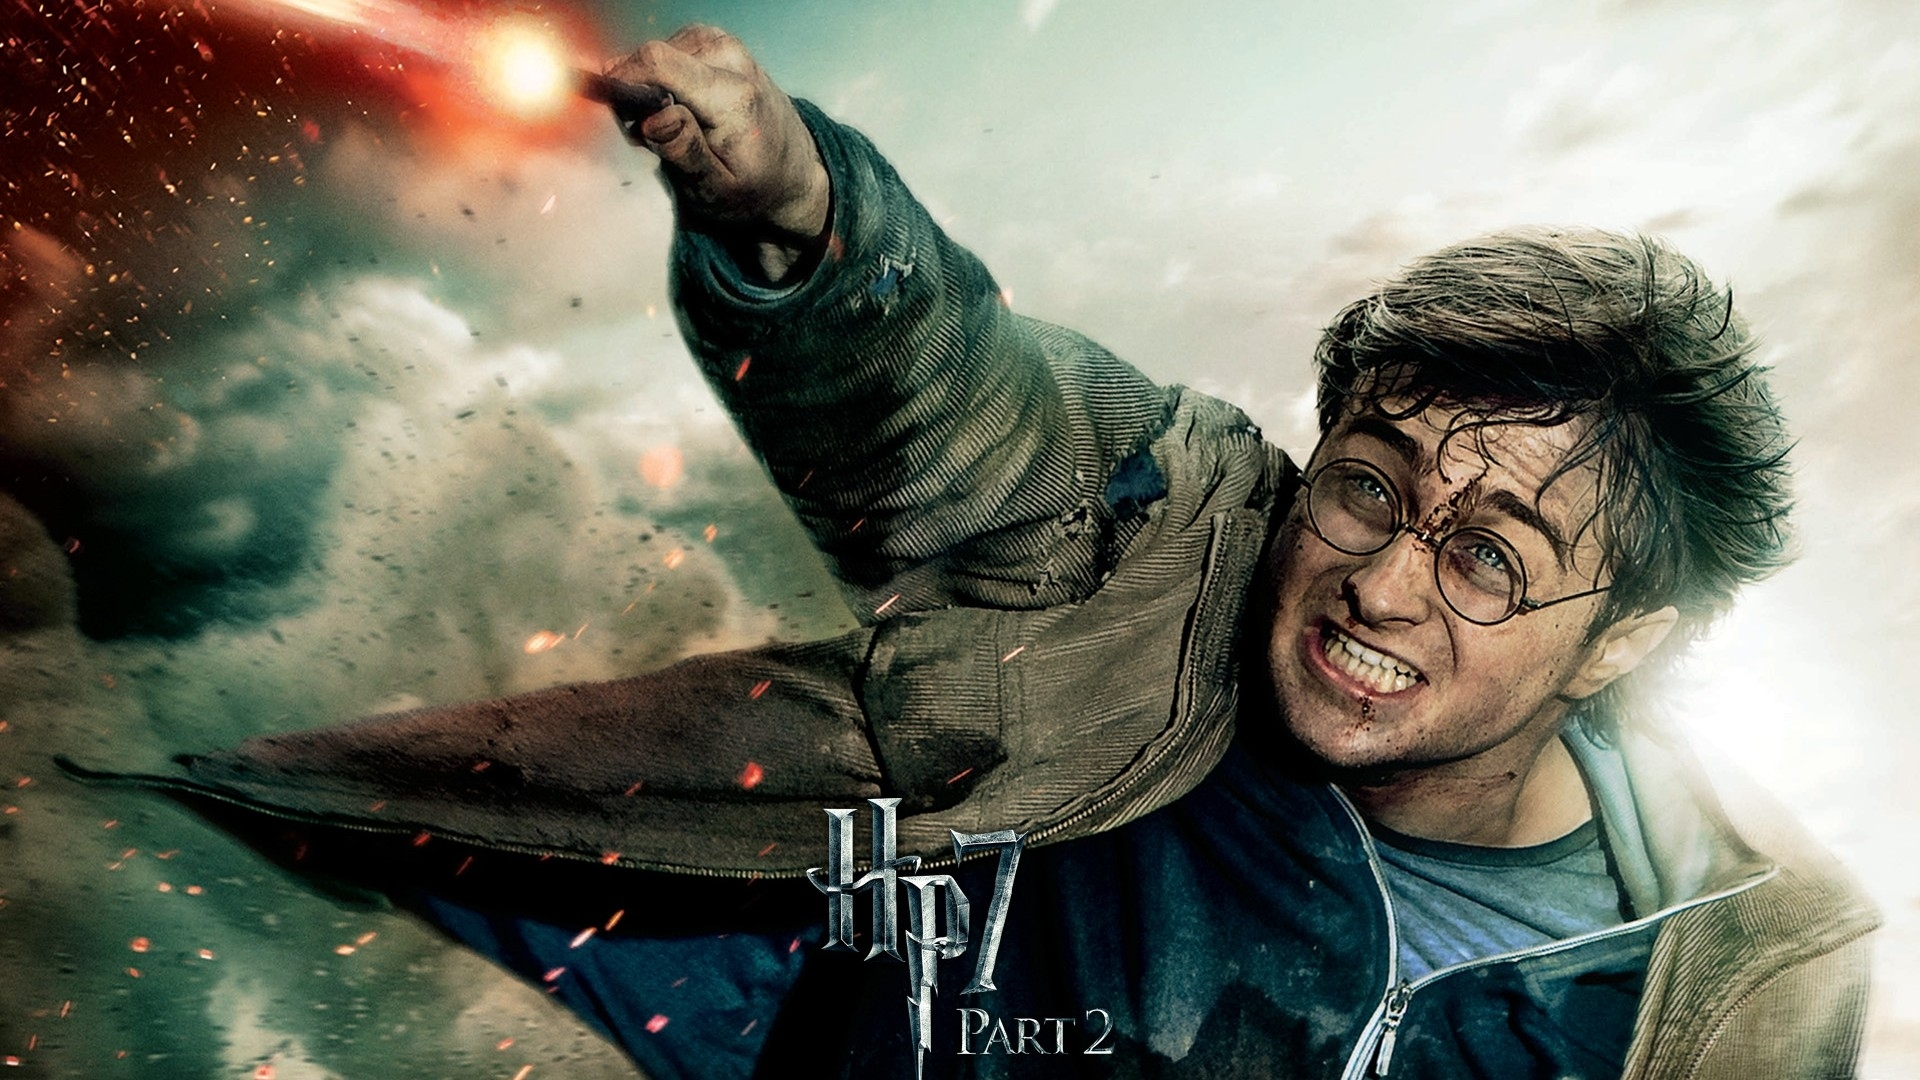 harry potter images hd